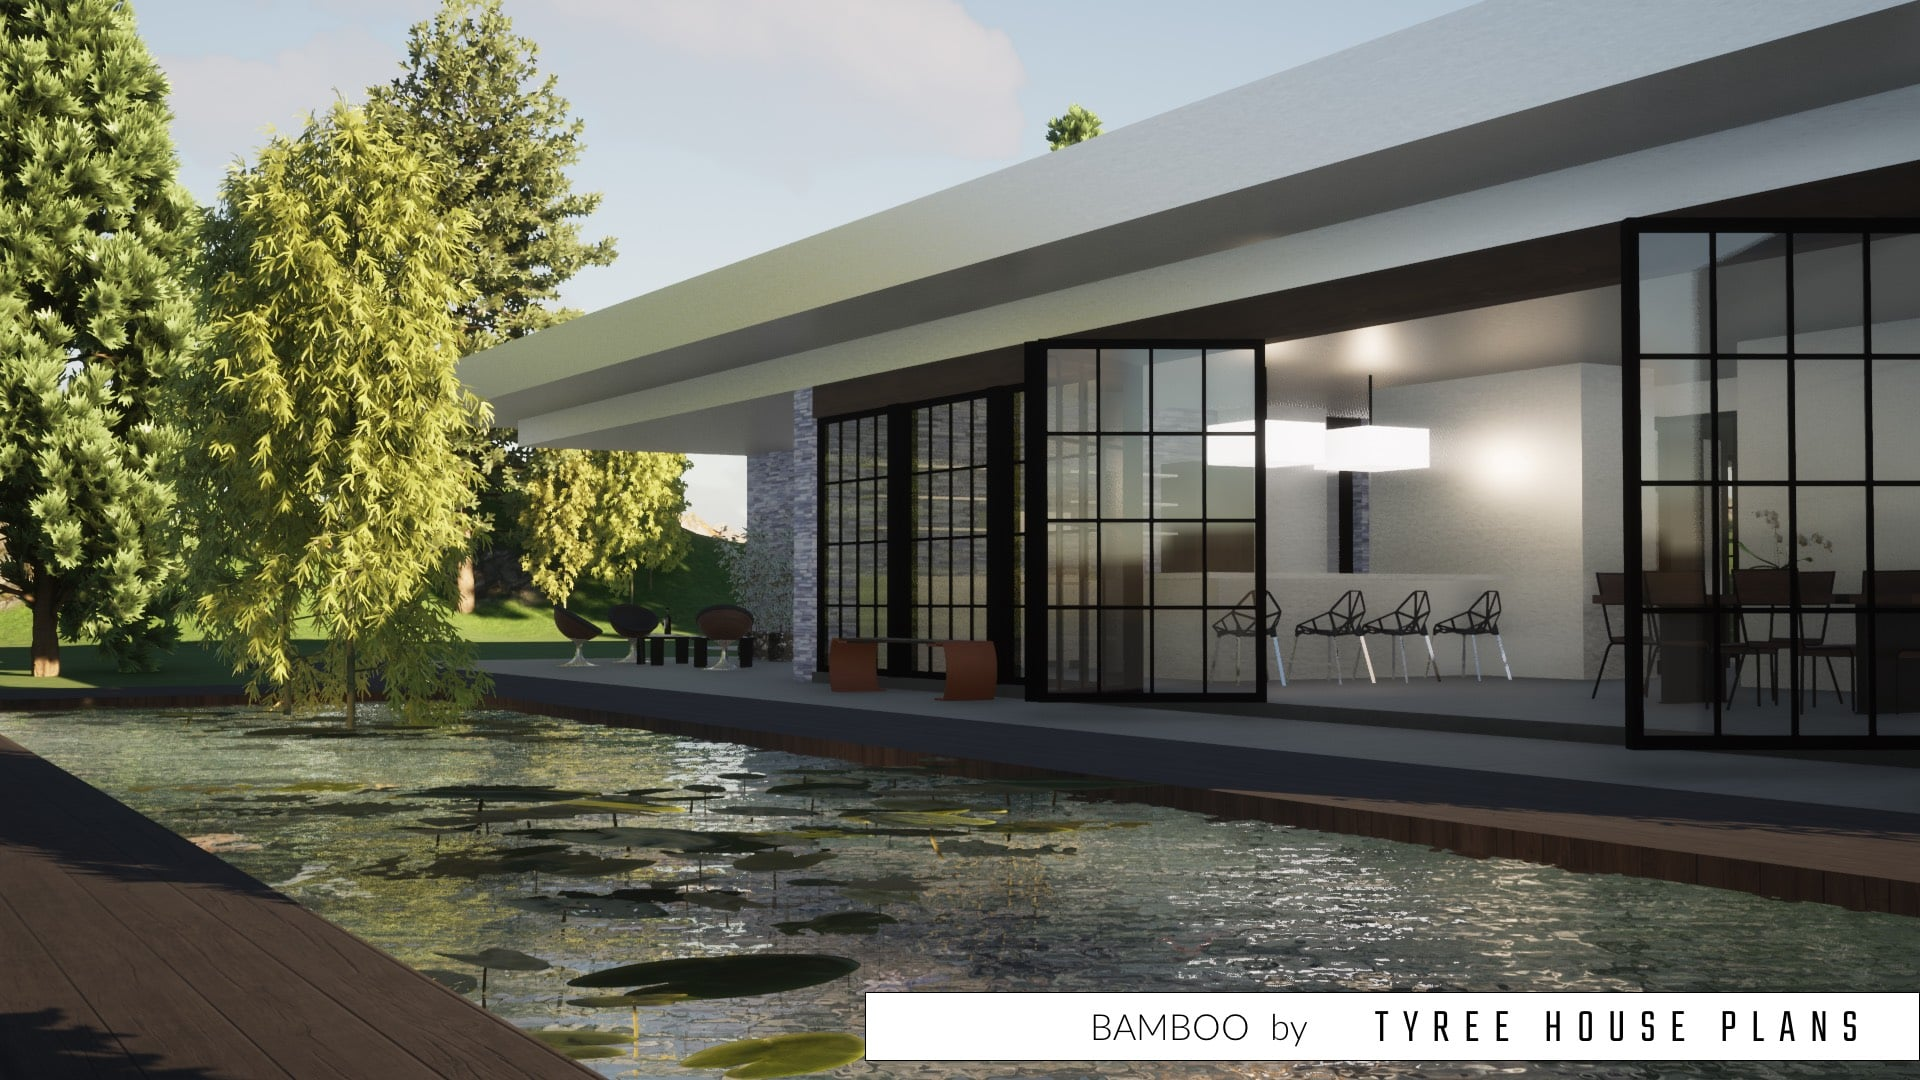 Bamboo House Plan by Tyree House Plans